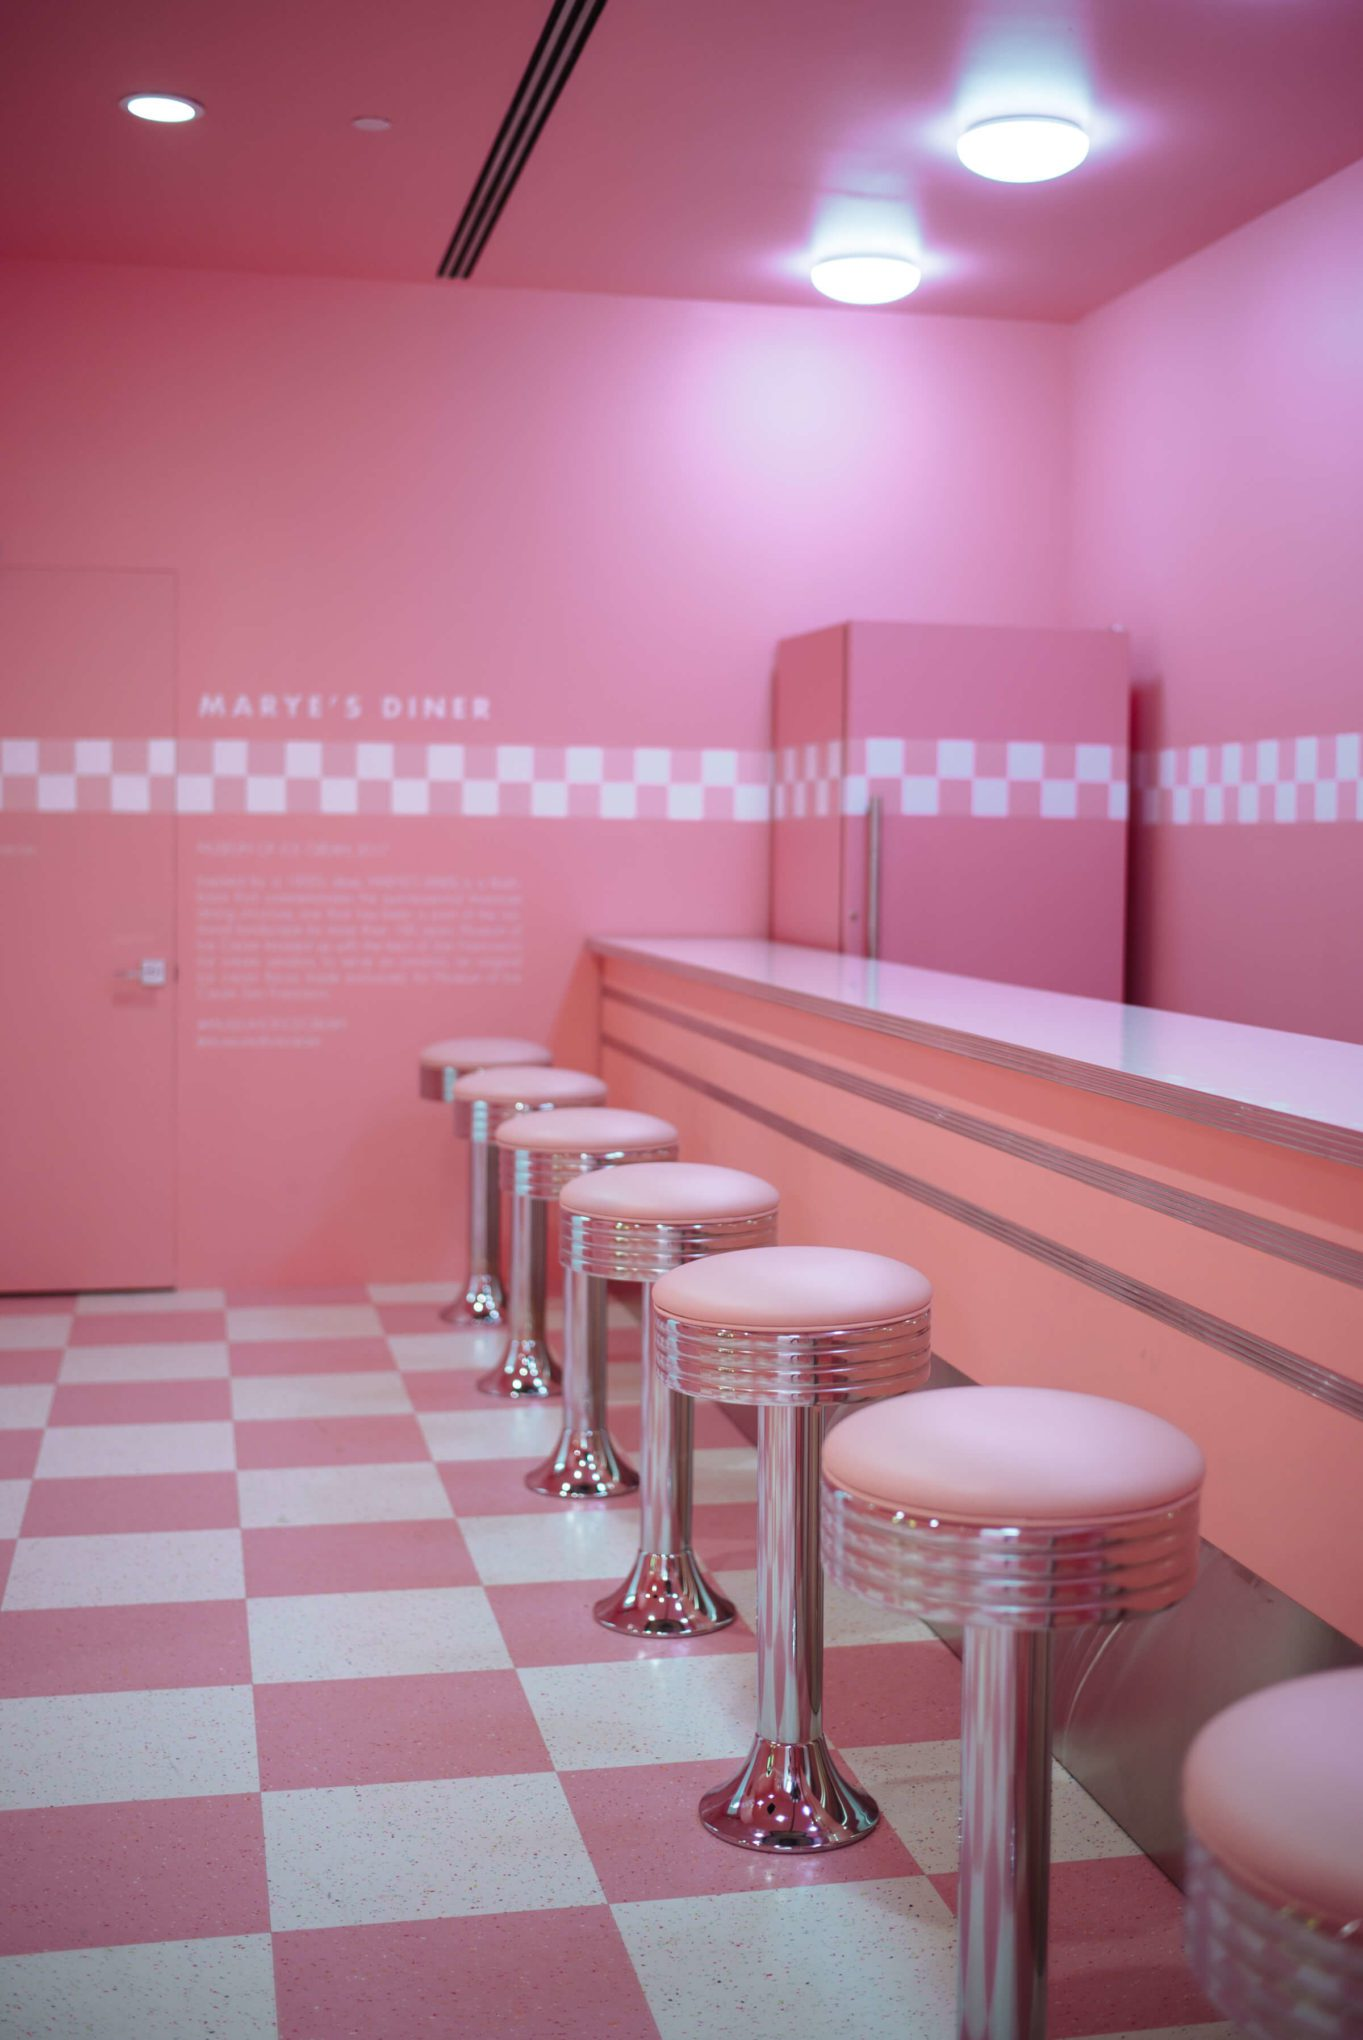 50s Dinner Soda Shop at The Museum of Ice Cream San Francisco, The Taste SF